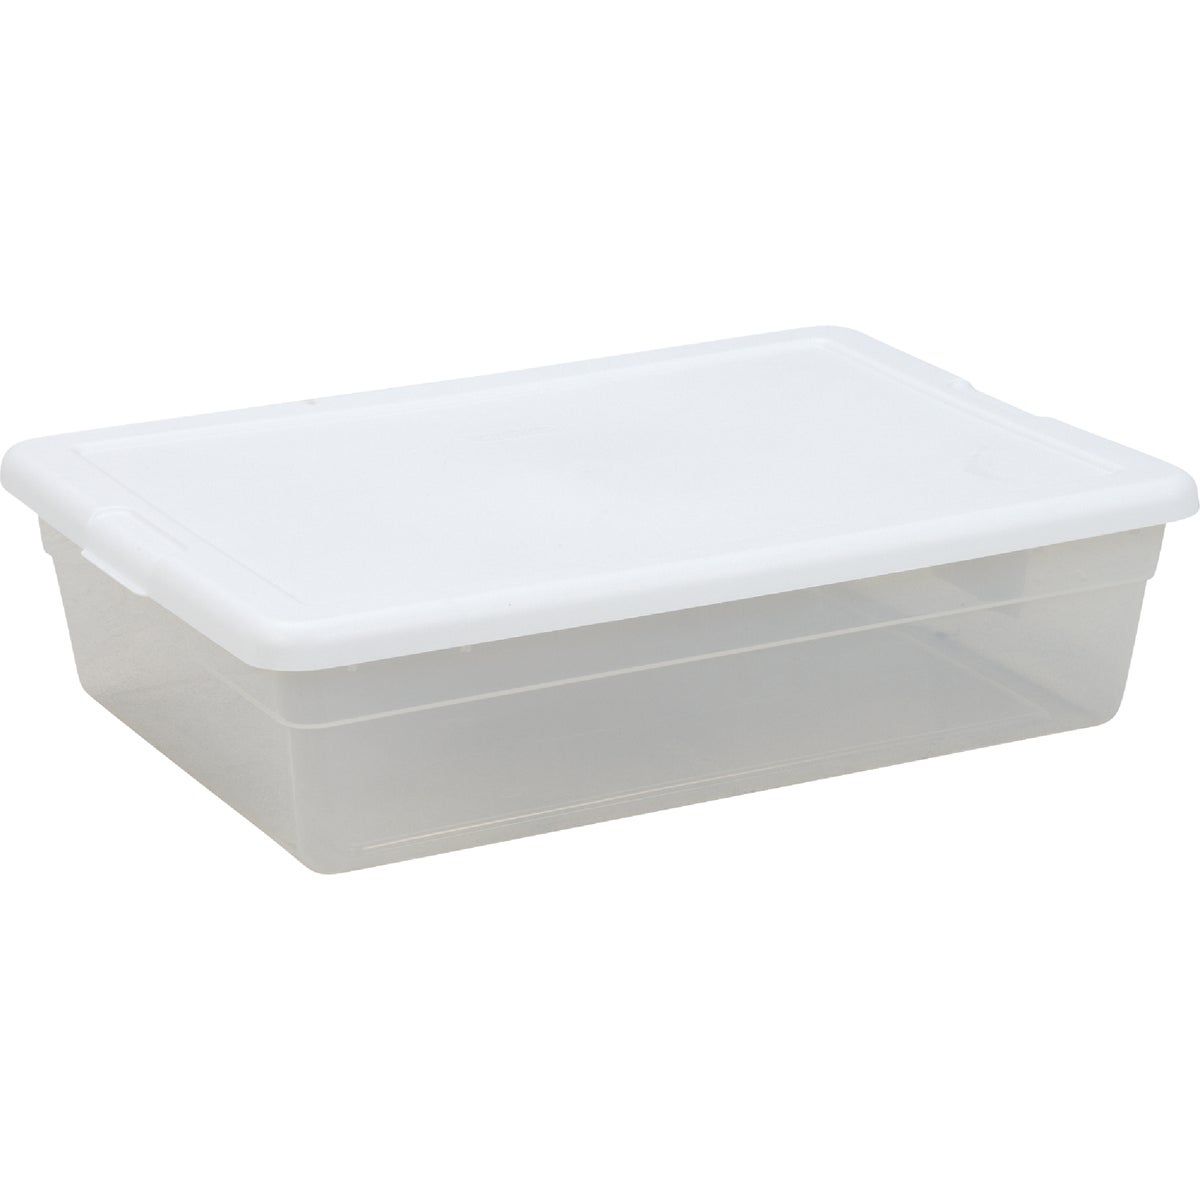 28QT CLEAR STORAGE BOX